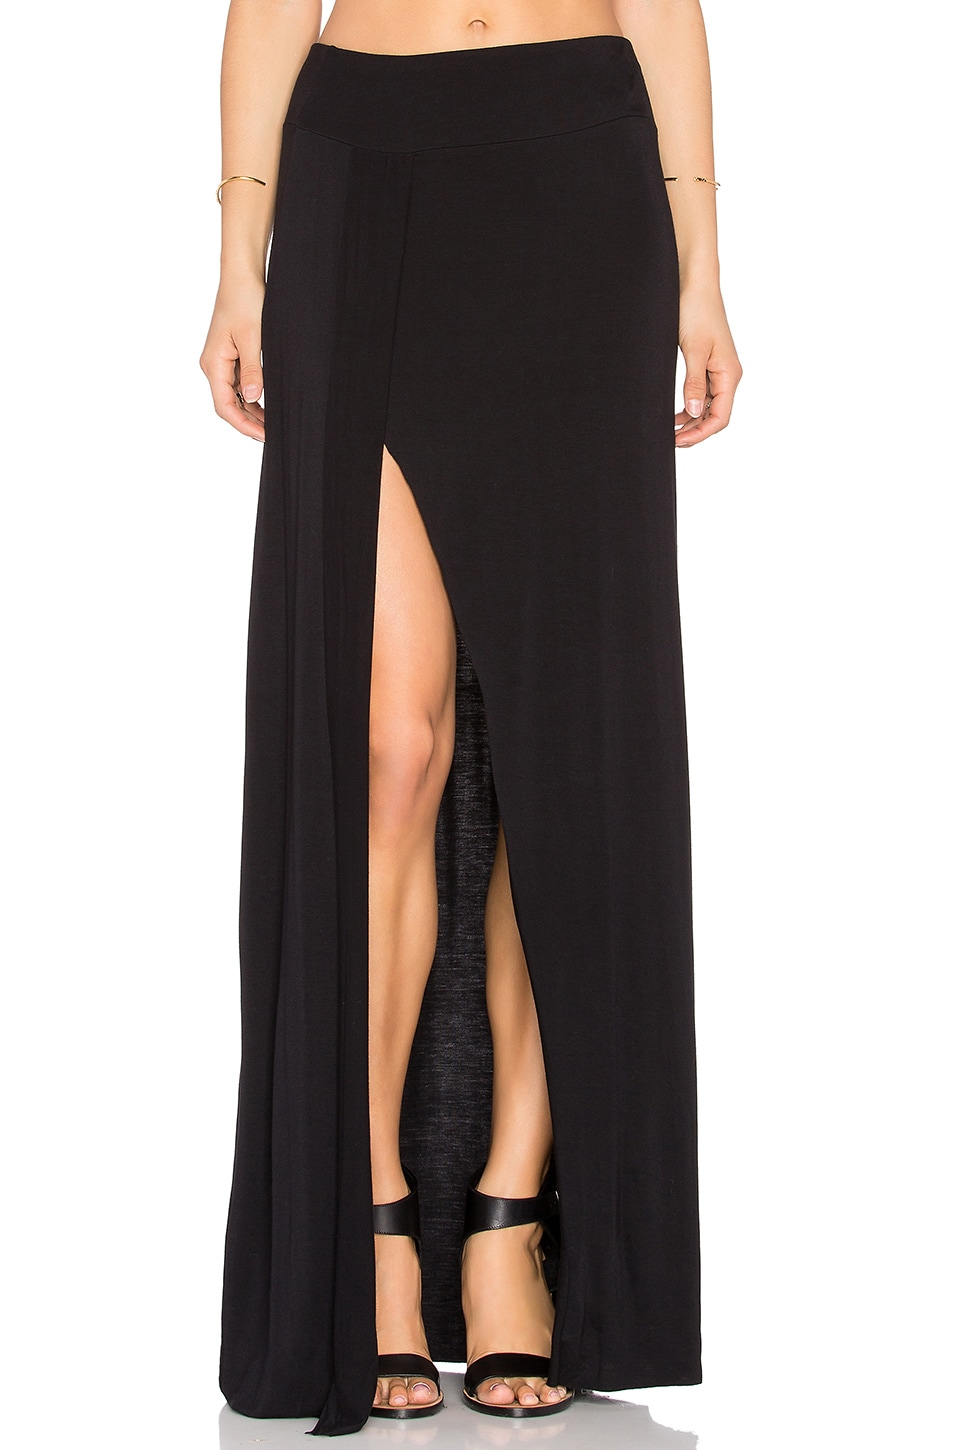 Bella Luxx Front Slit Maxi Skirt in Black